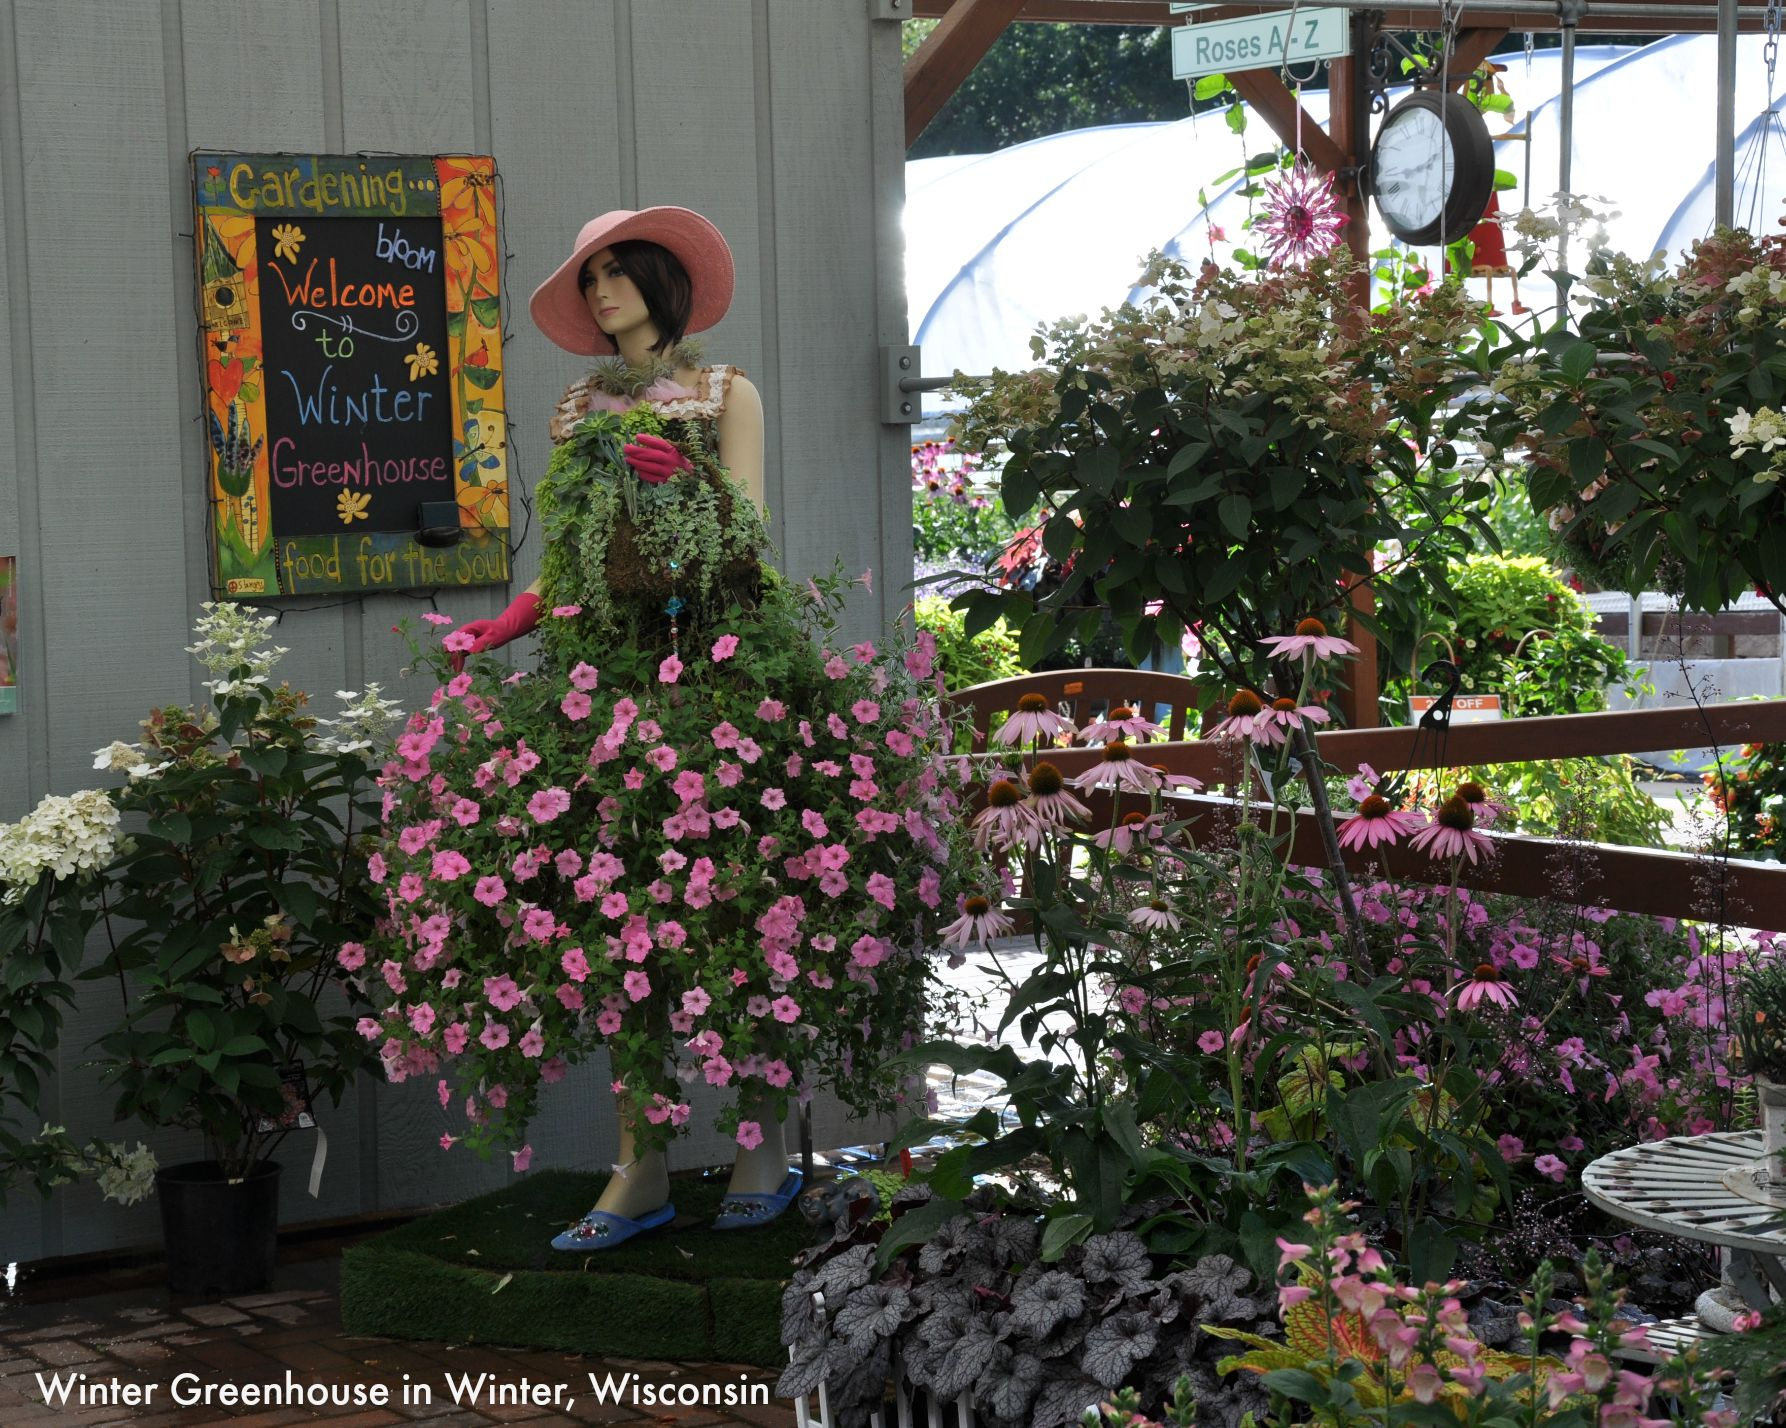 Winter Greenhouse is a popular garden center and nursery